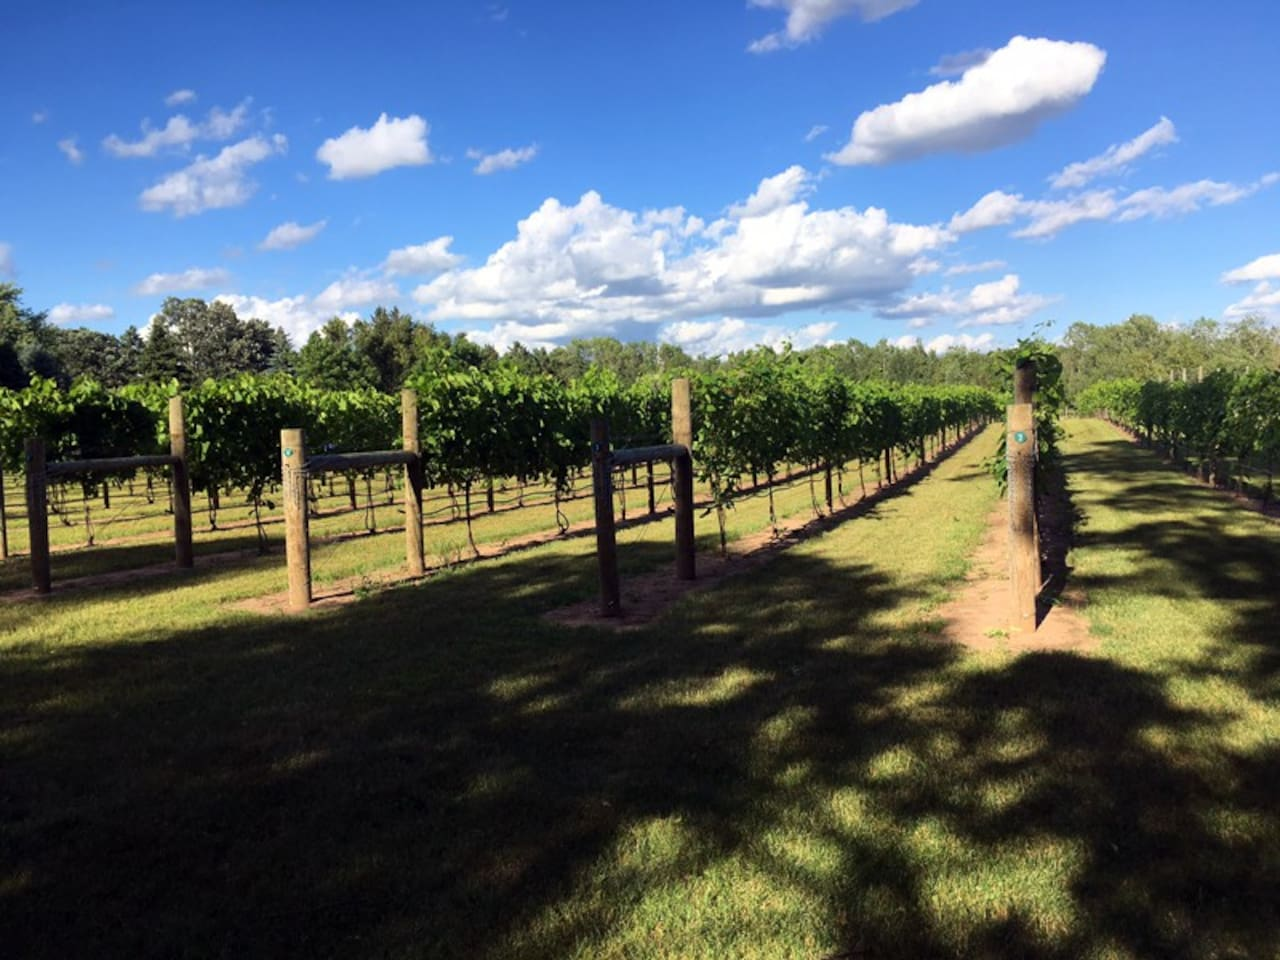 Guests are welcome to walk the vineyards or relax under a tree and read.